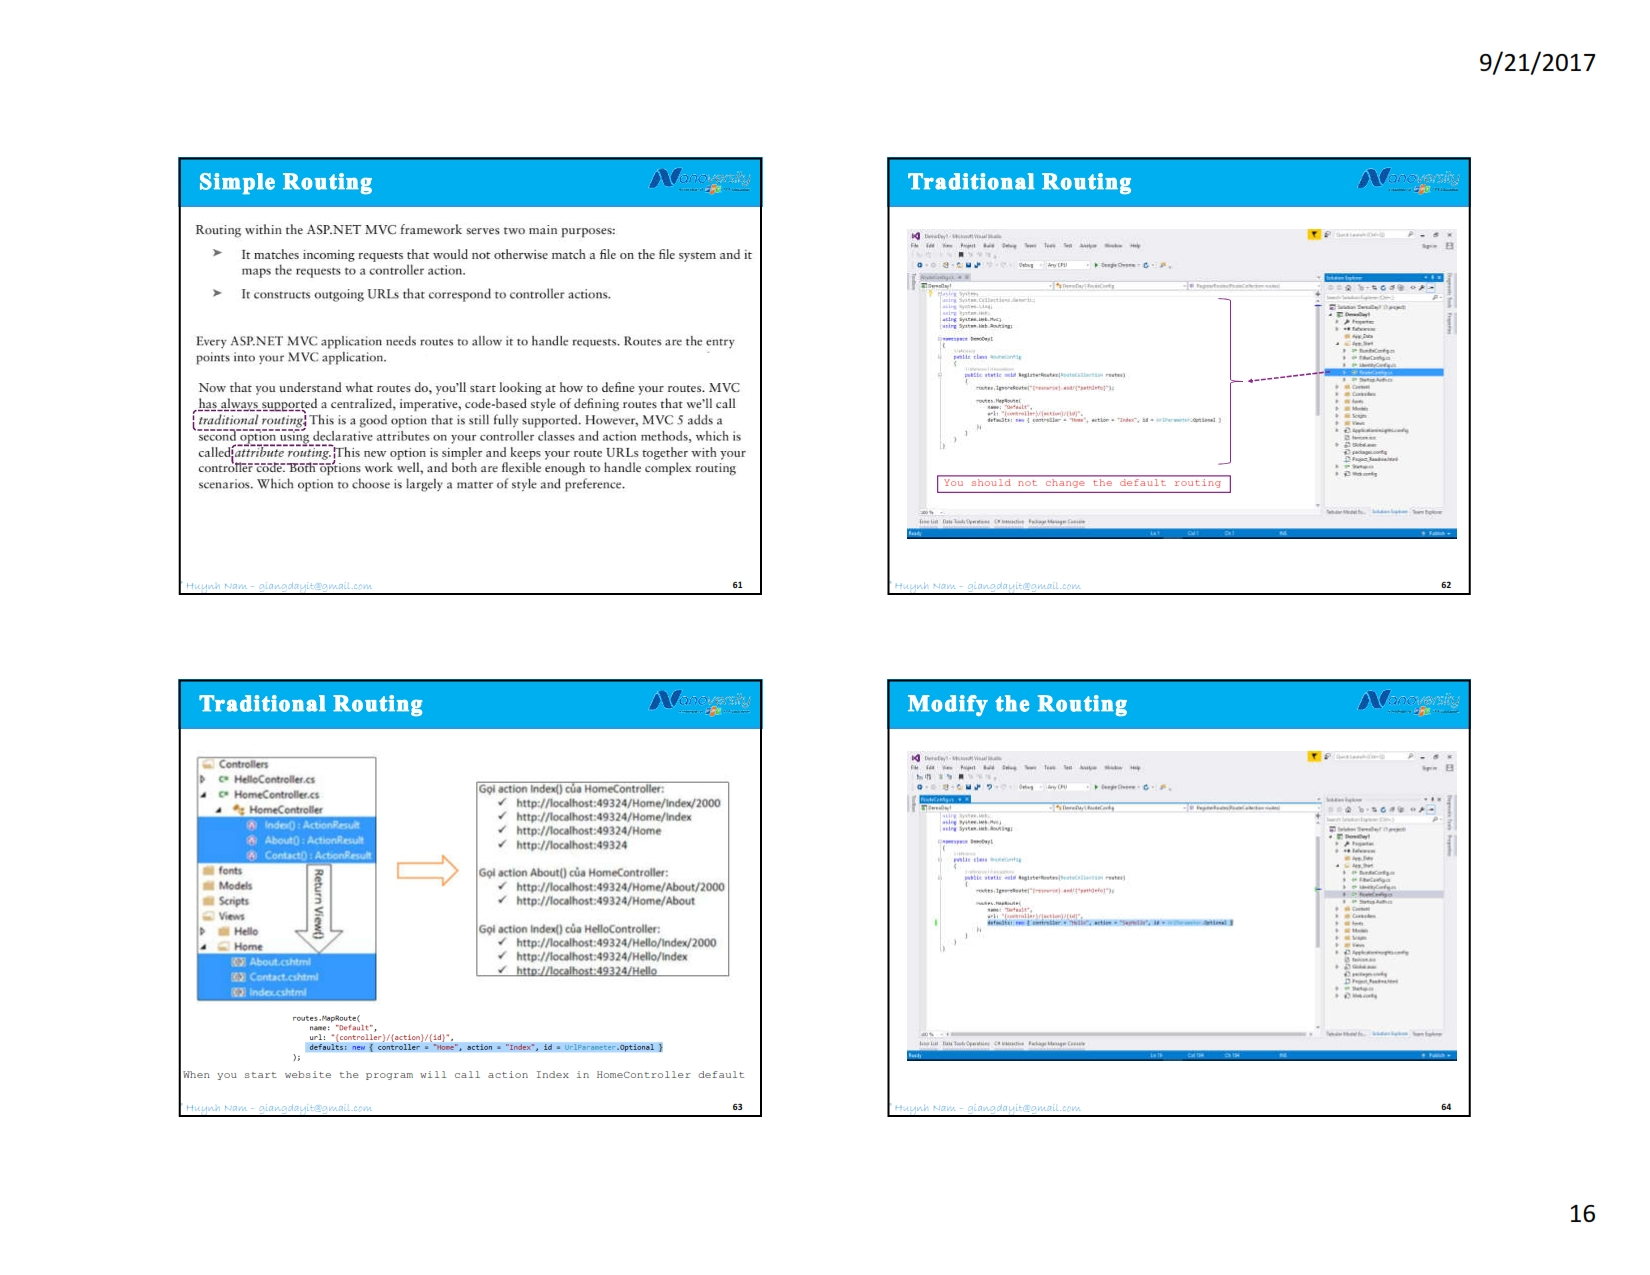 can-ban-tao-project-controller-view-razor-session-Intro-trong-mvc6-016.jpg